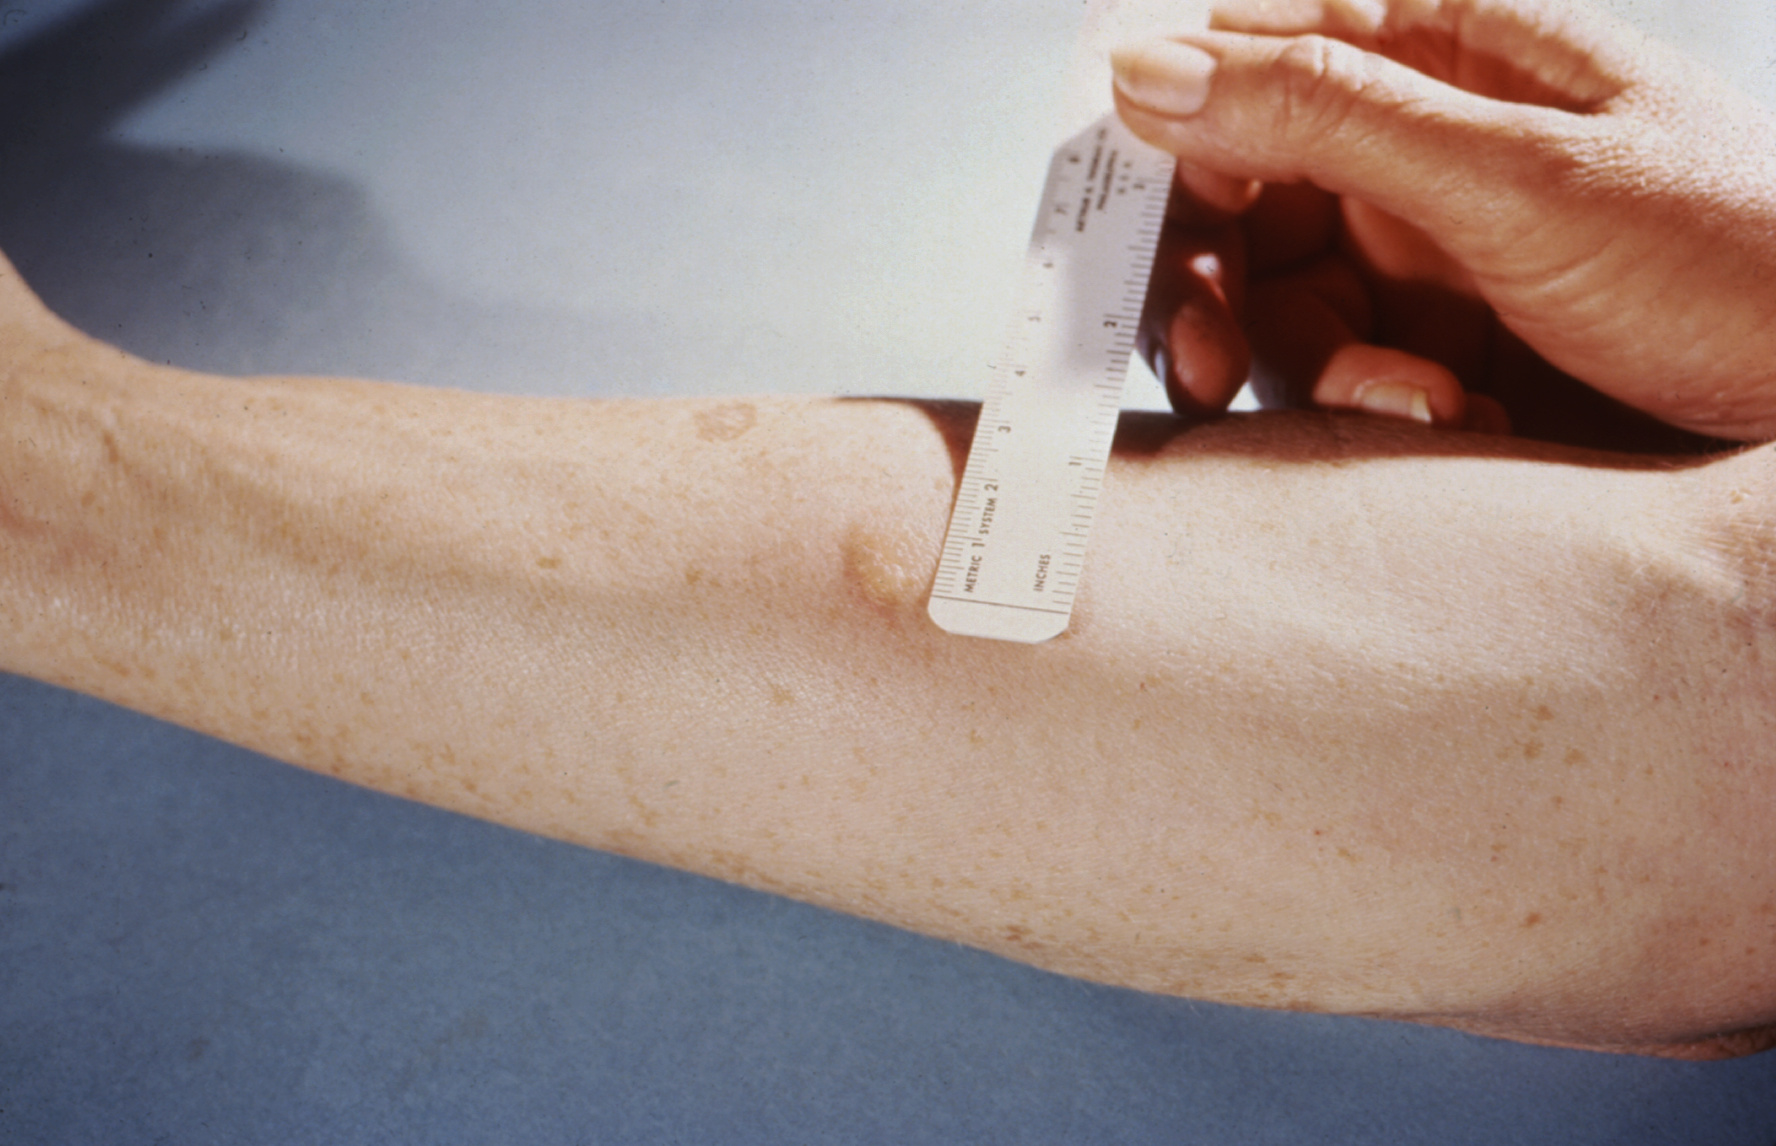 tb test reading induration quotes